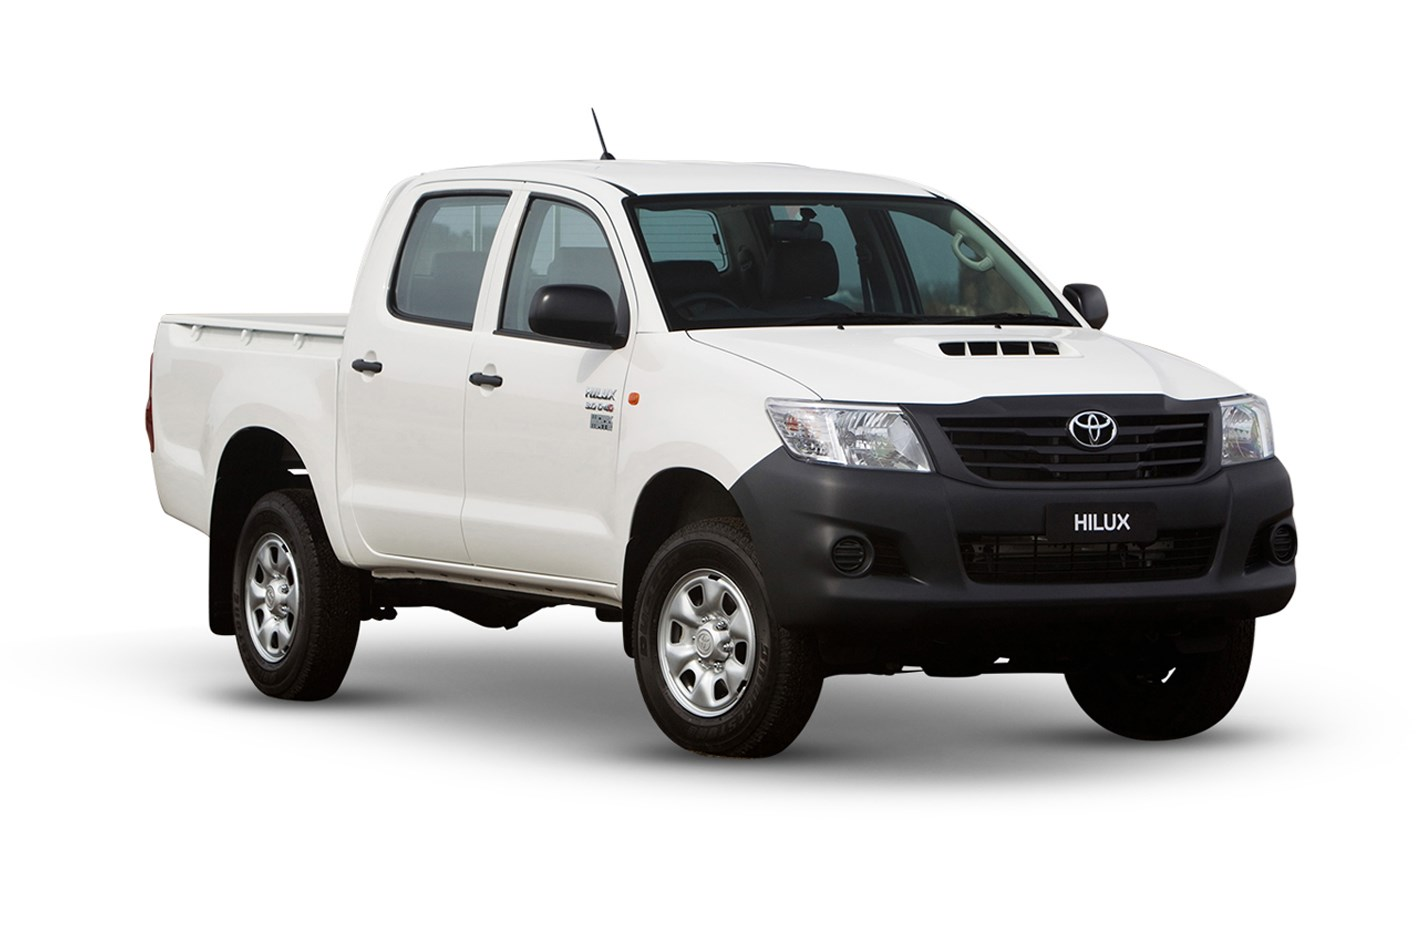 2016 toyota hilux sr 4x4 cab chassis review caradvice - 2017 Toyota Hilux Workmate 4x4 Dual Cab Utility